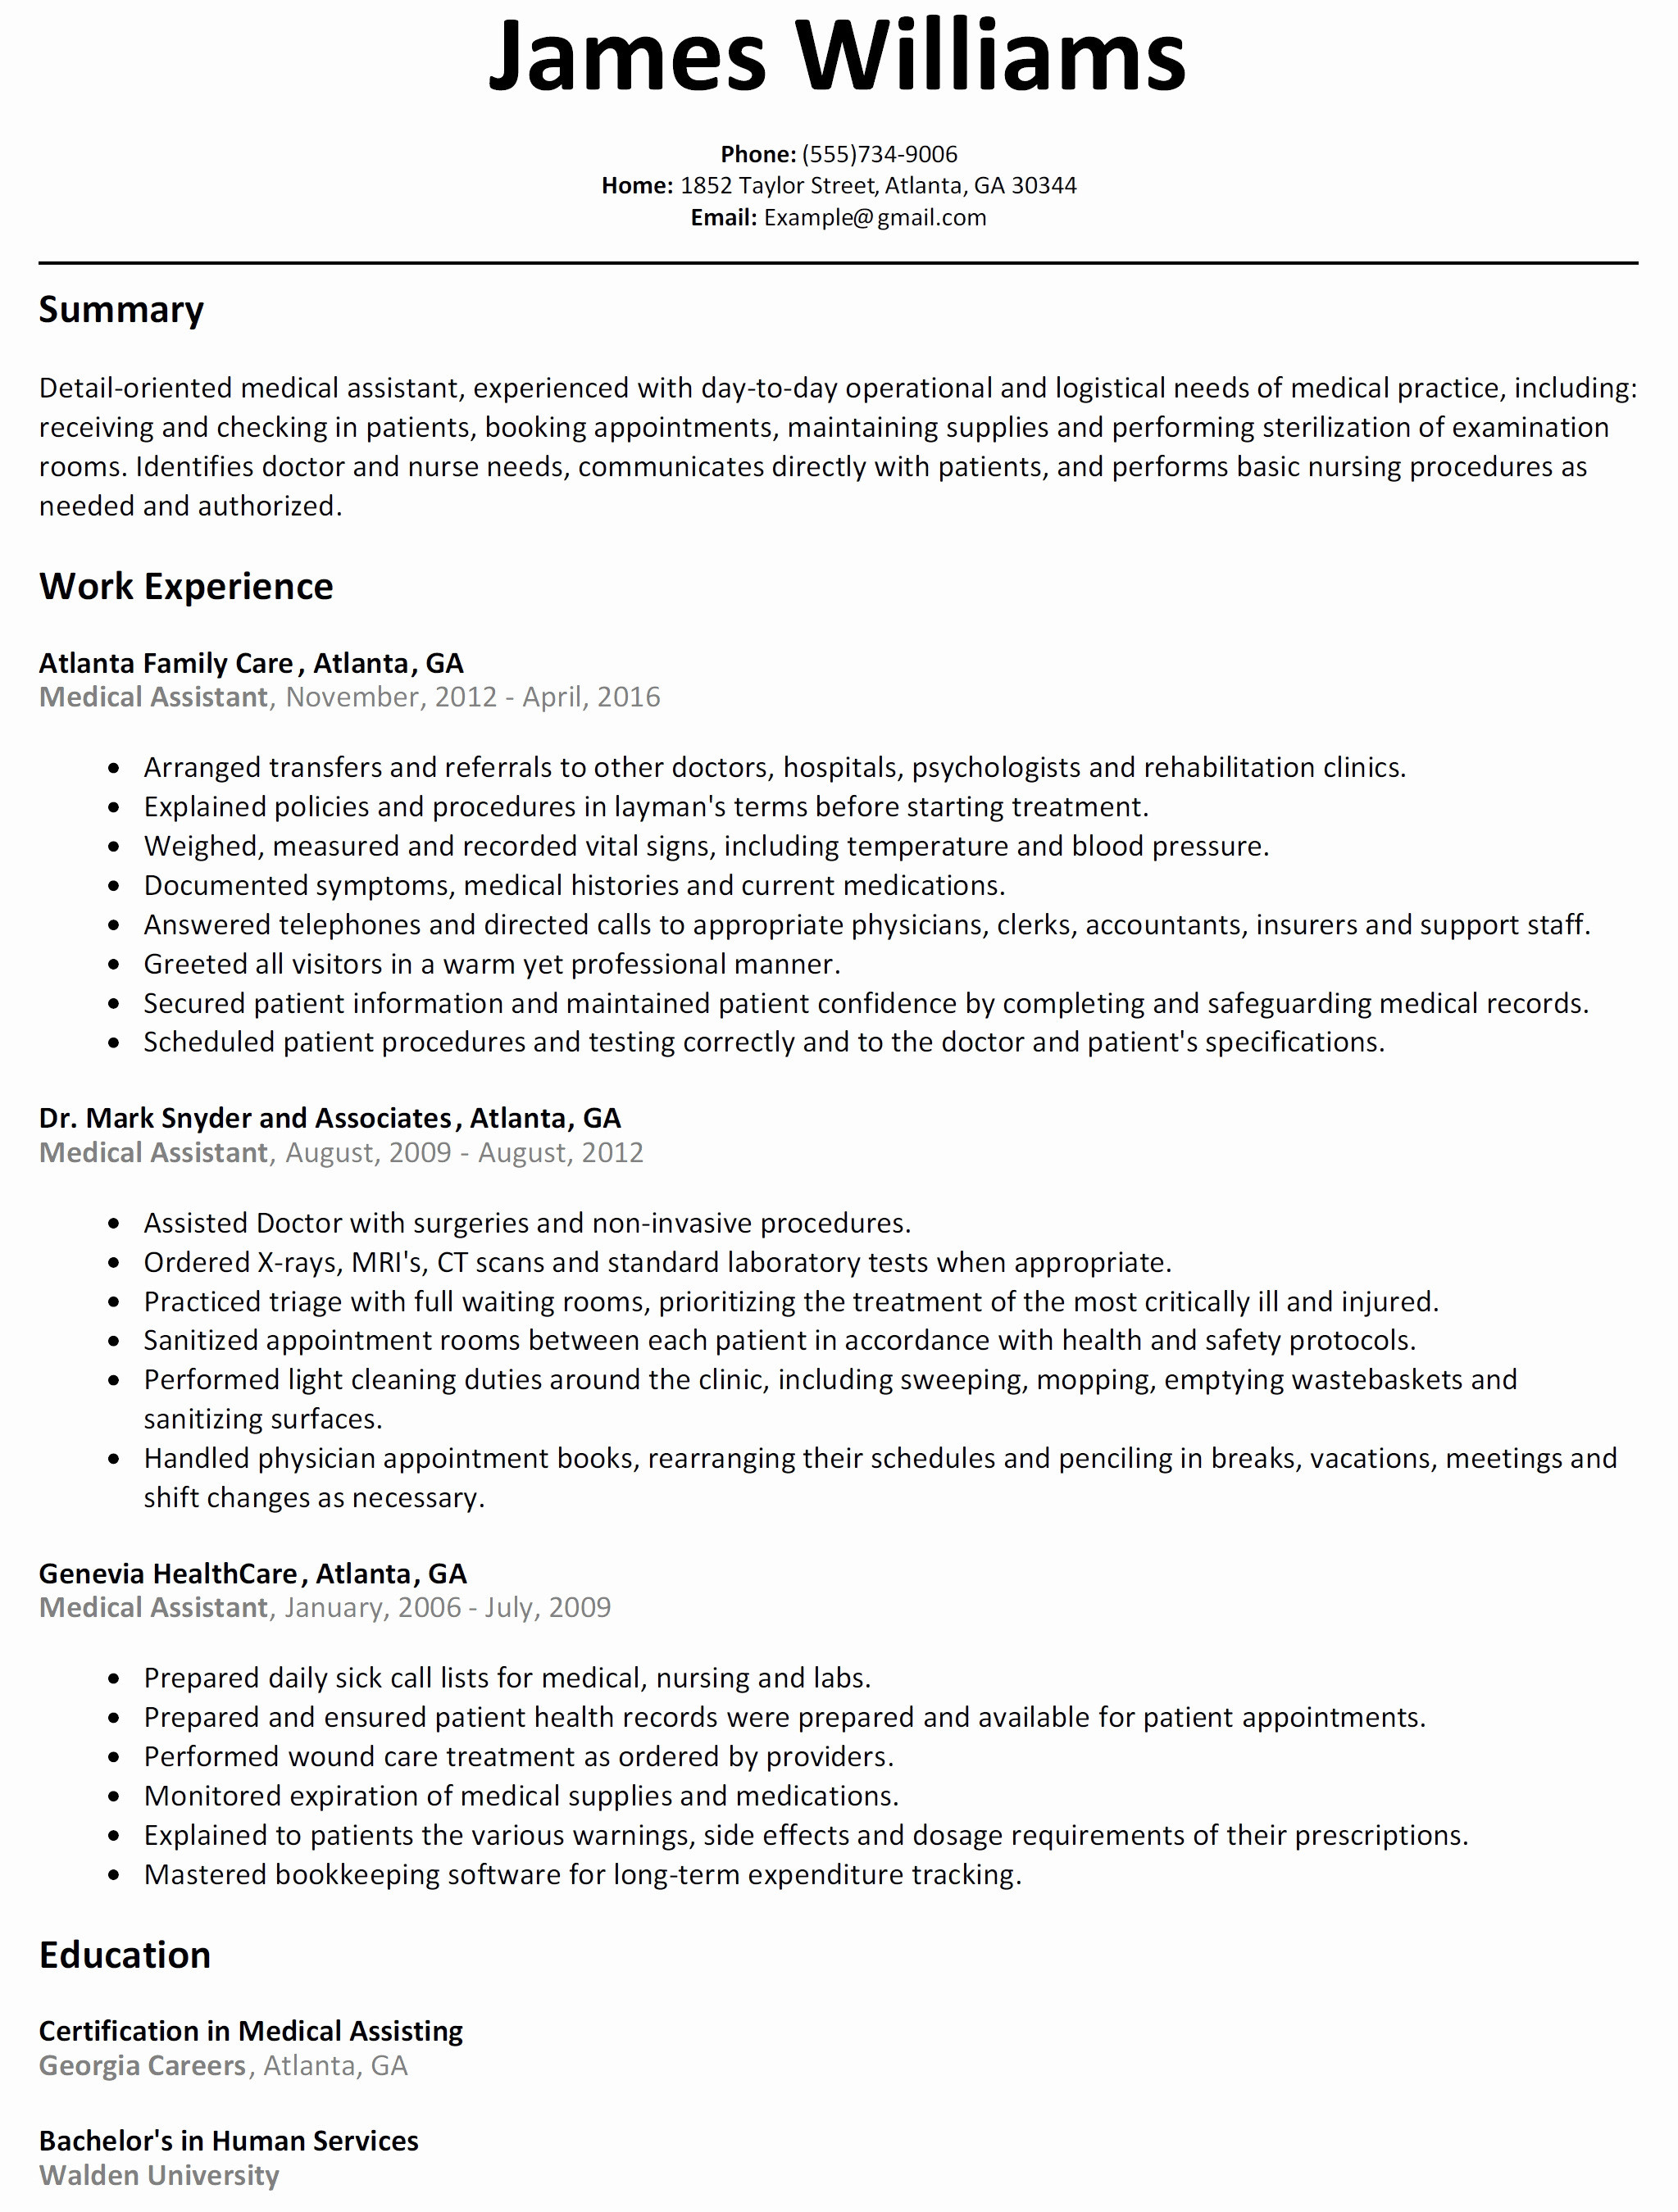 Resume Template for Teaching assistant - Free Downloadable Resumes In Word format Recent Best Resume